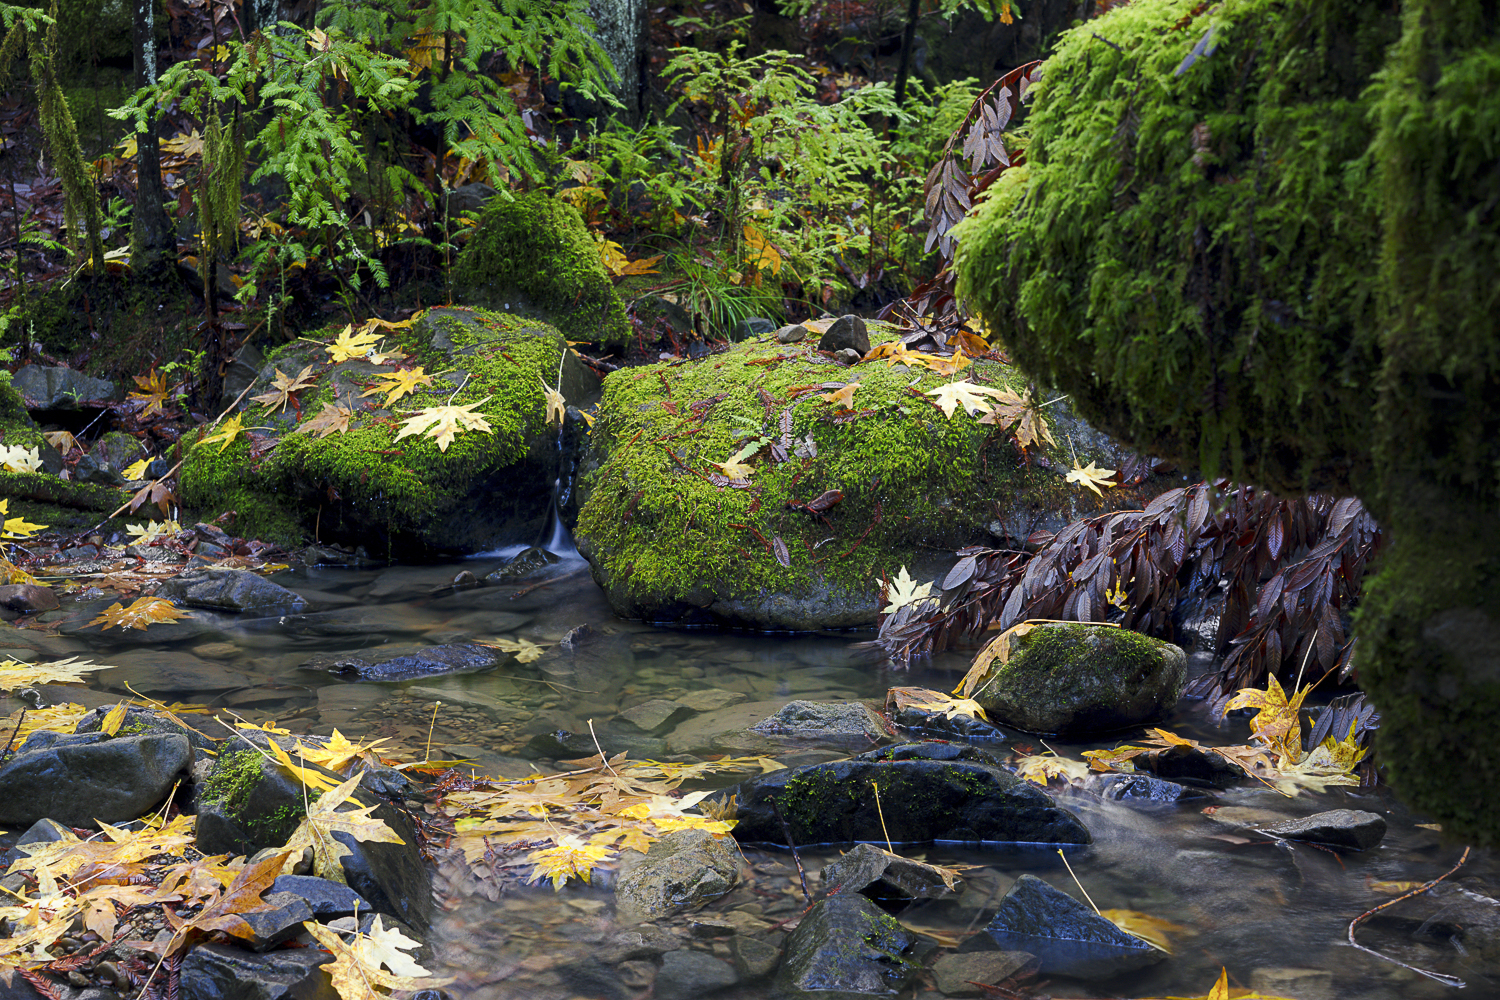 Montgomery Creek, Montgomery Woods State Nature Reserve, Mendocino County